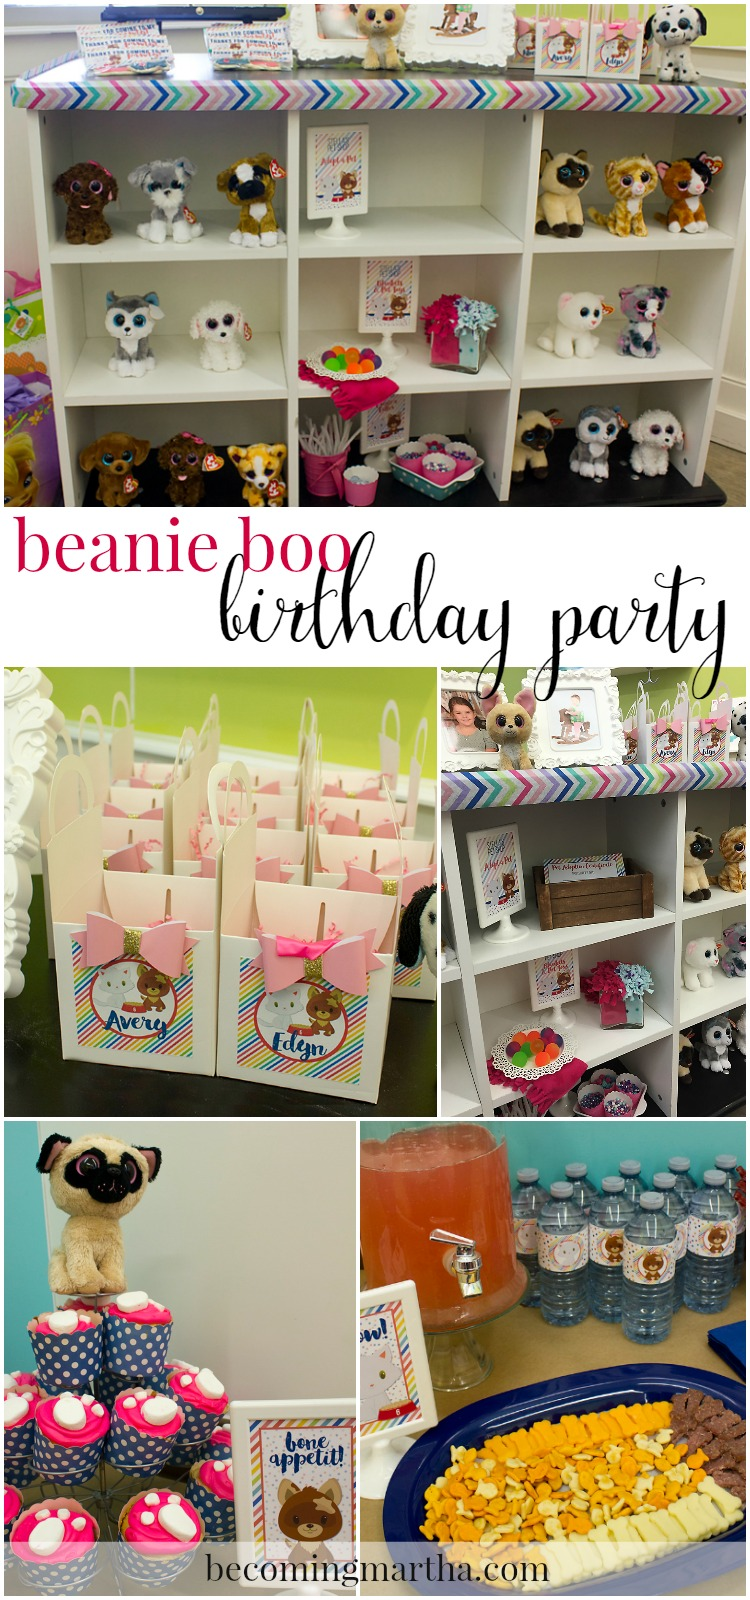 beanie boo birthday party collage